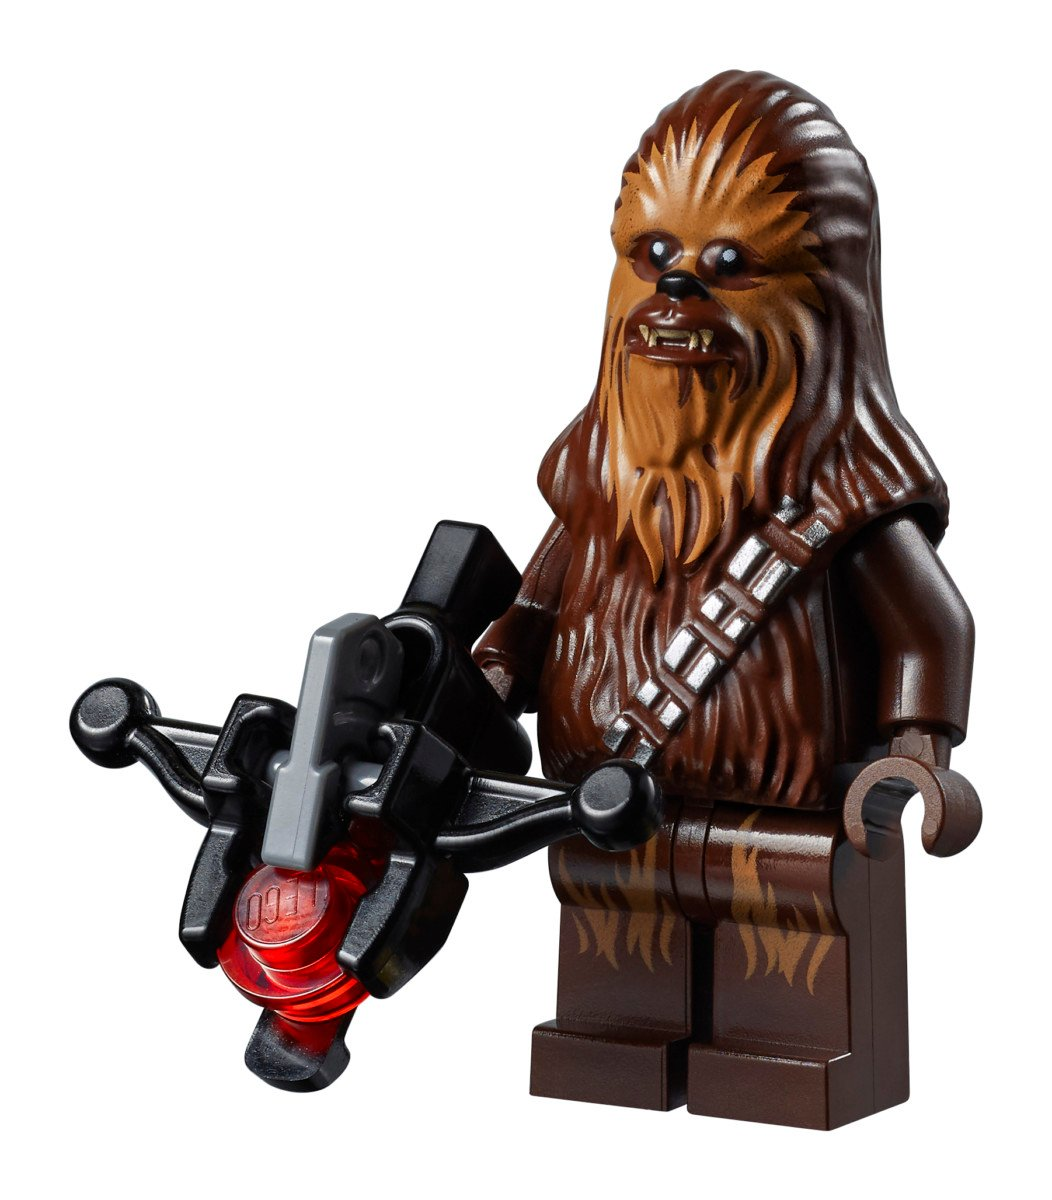 75222 top panel minifigure 11 - LEGO's Star Wars Betrayal at Cloud City is a brilliant recreation of the Empire Strikes Back